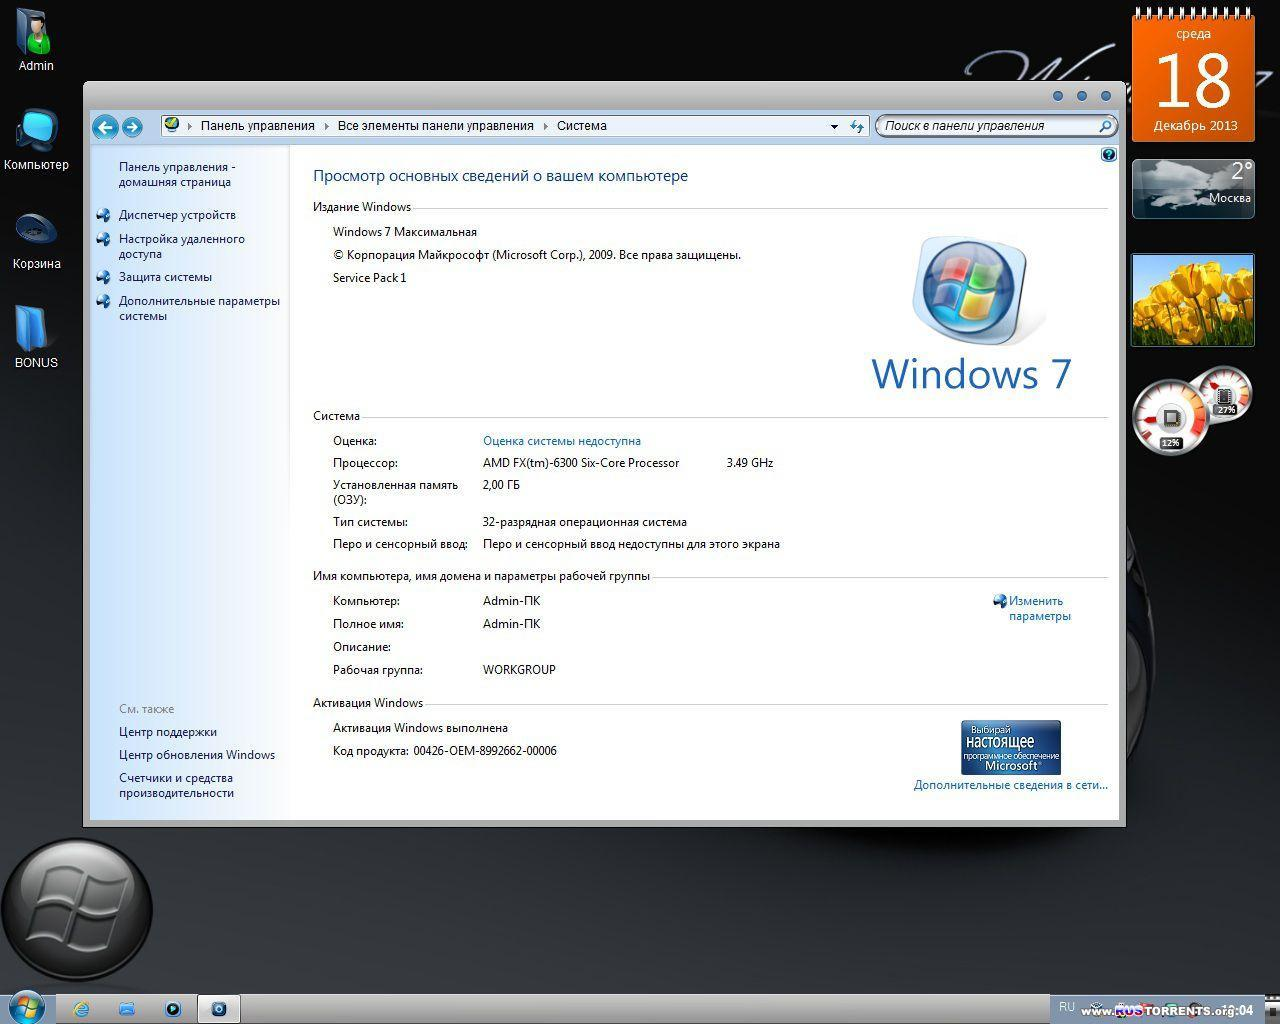 Windows 7 Ultimate SP1 x86/x64 Plus WPI PE StartSoft 75 RUS